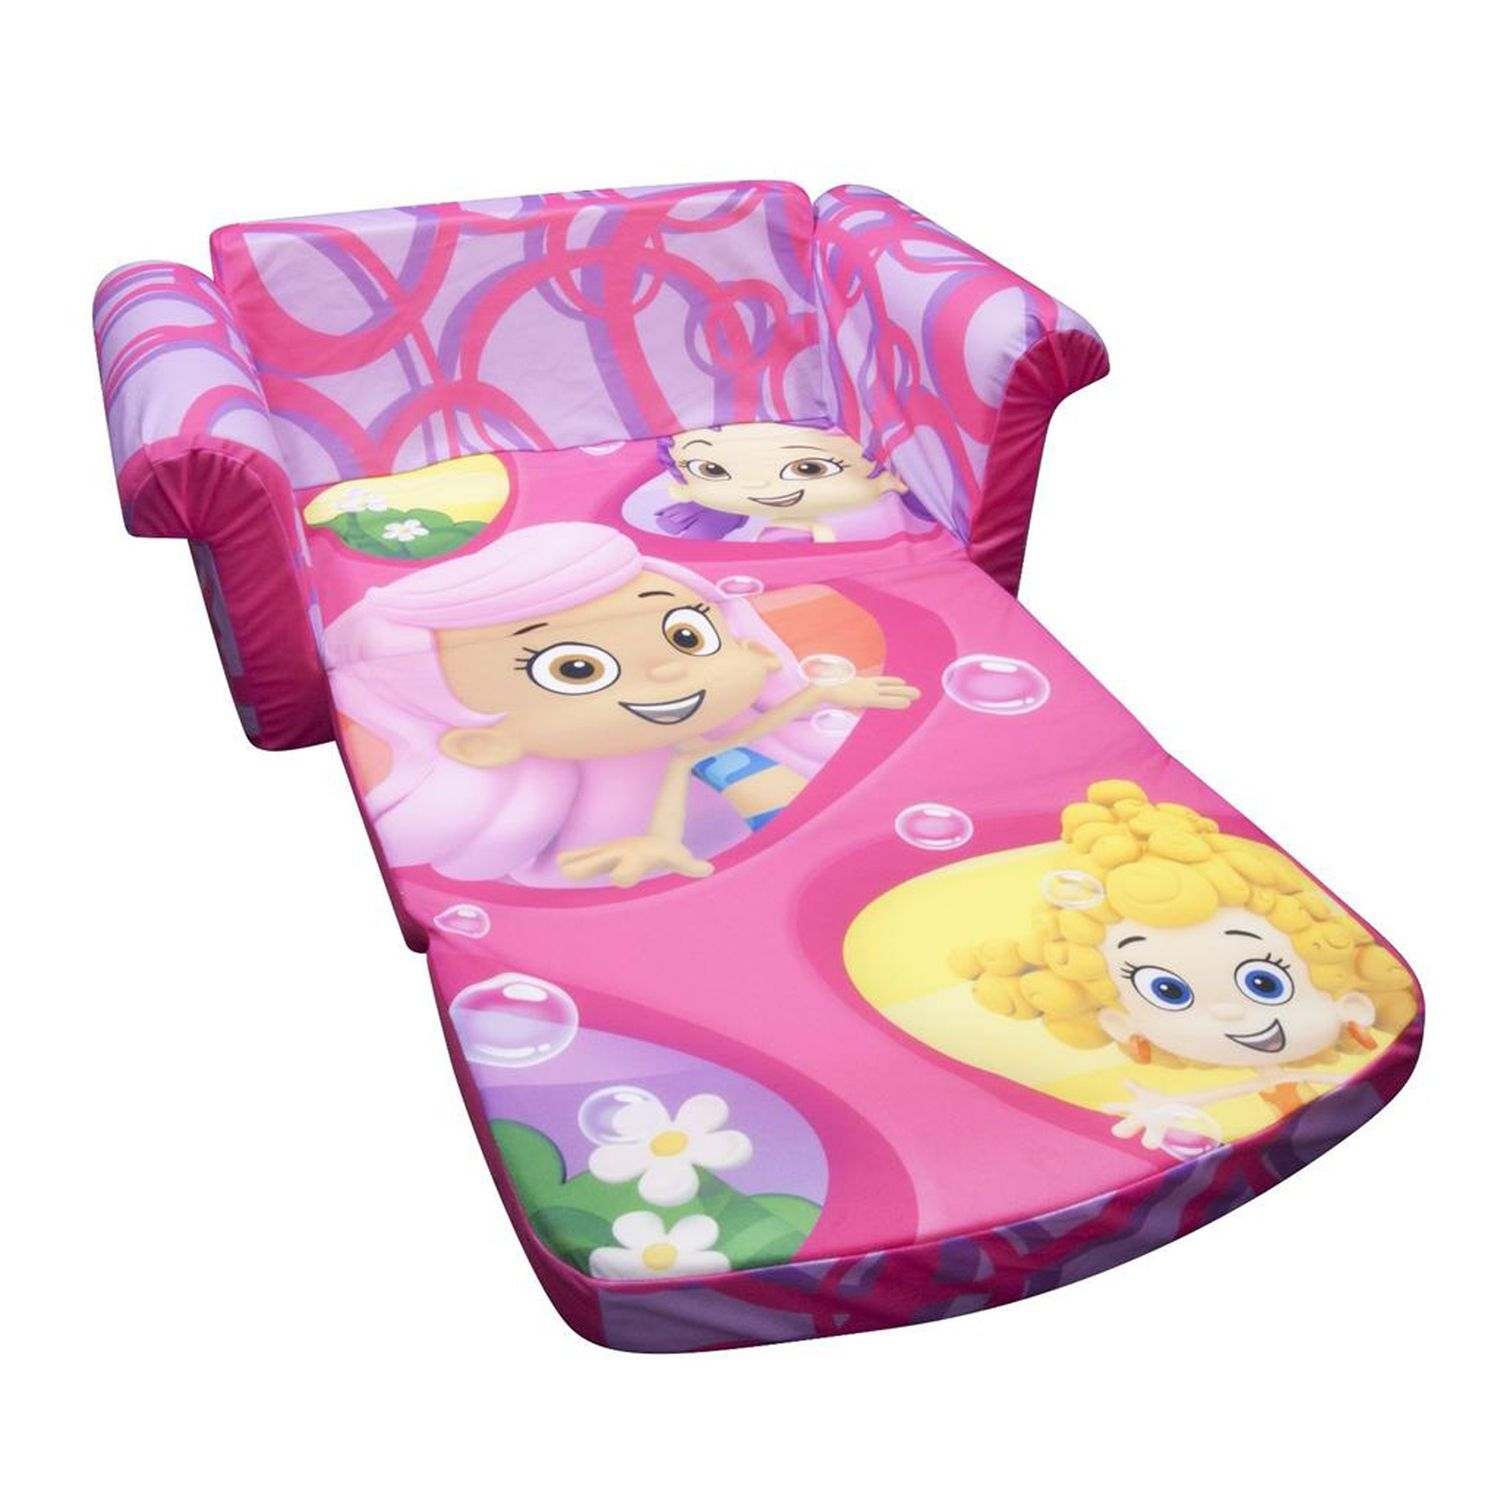 Kids Flip Sofa Kids Children Flip Out Sofa Foam Bed Blue